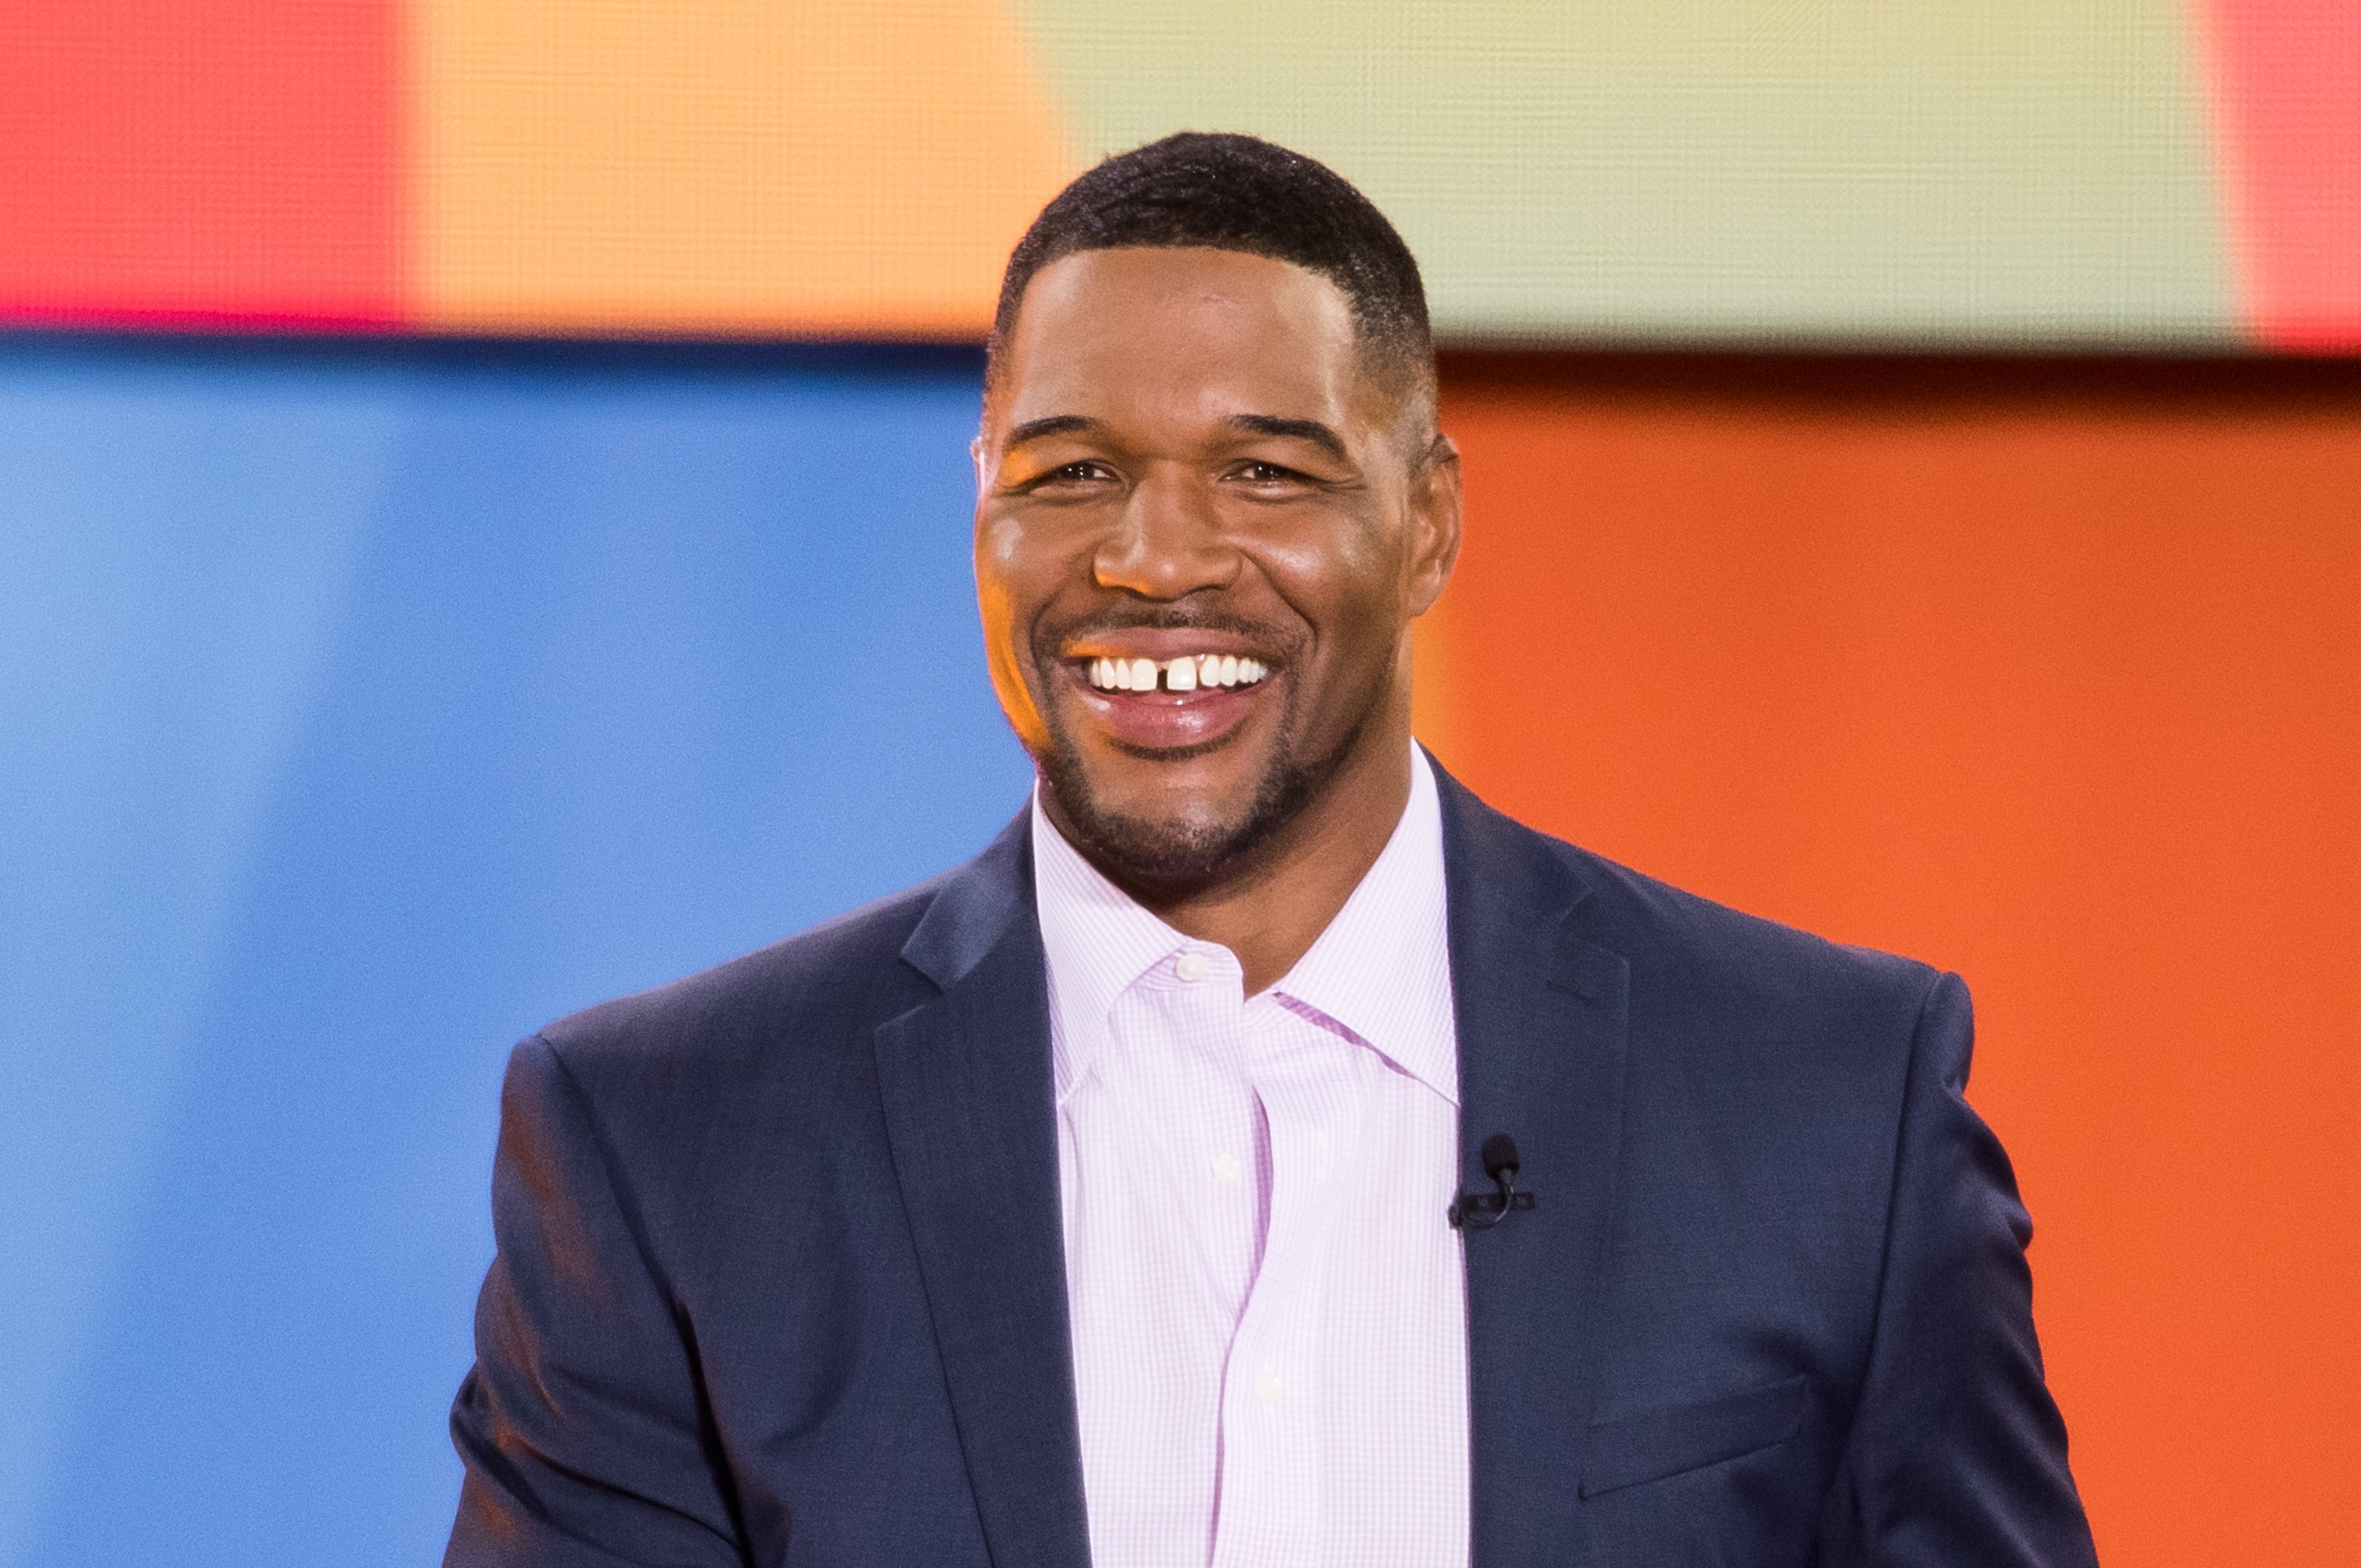 """Michael Strahan attends ABC's """"Good Morning America"""" at Rumsey Playfield, Central Park on July 6, 2018. 